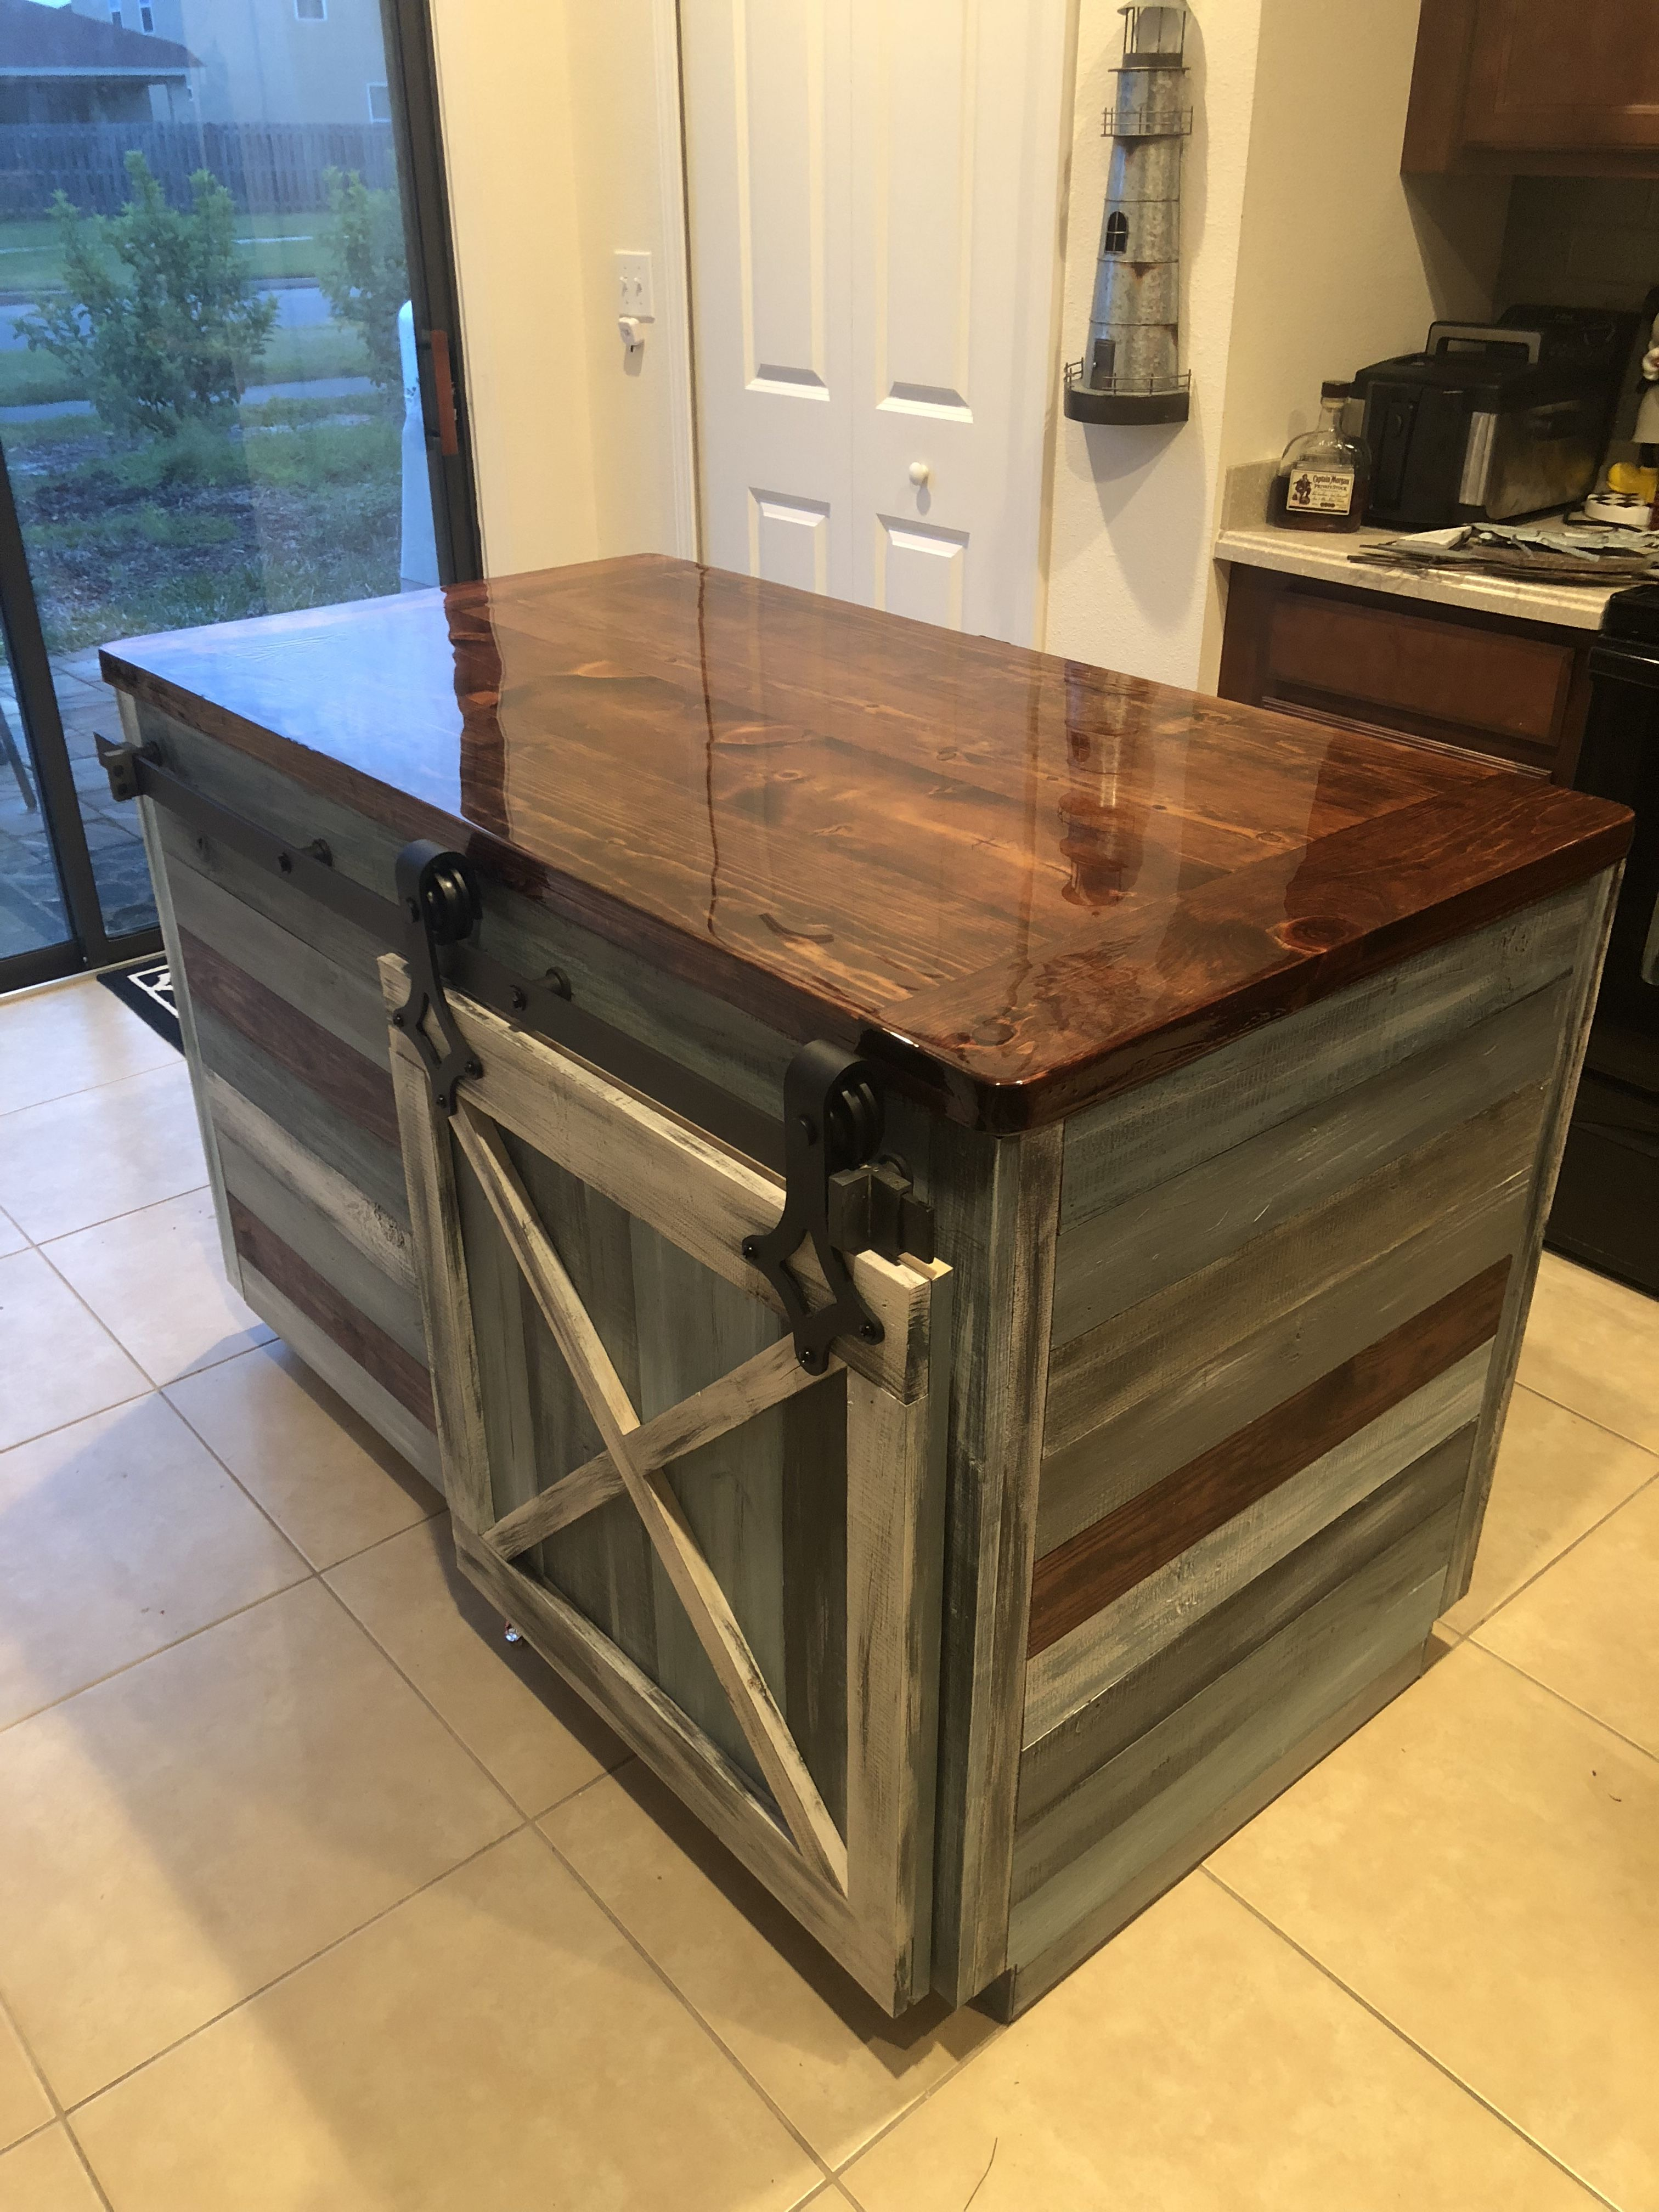 Gorgeous Custom Kitchen Island By Rob Conklin Jr At Pristine Finishes Woodwork In St